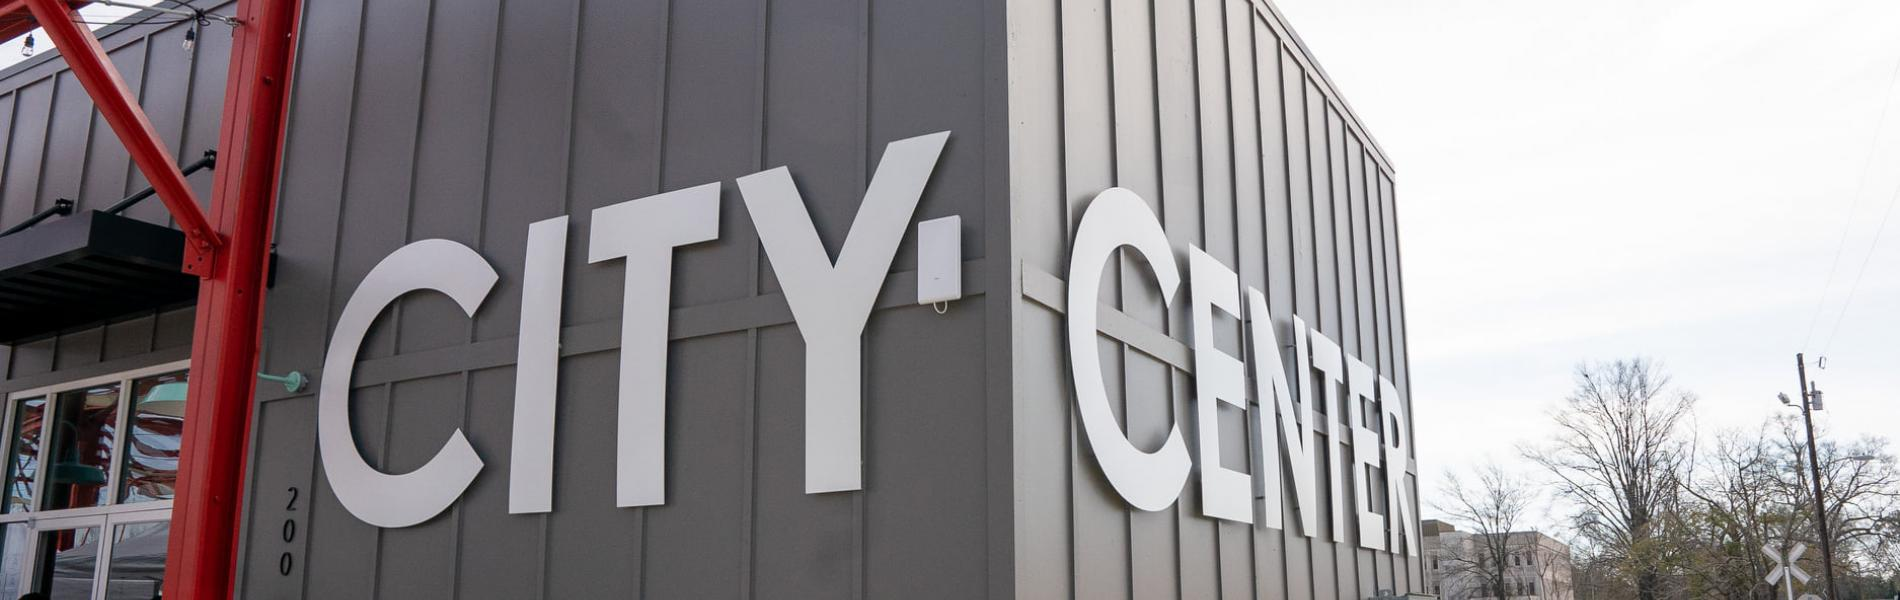 Grey building with the words City Center on the sides in large, white letters.